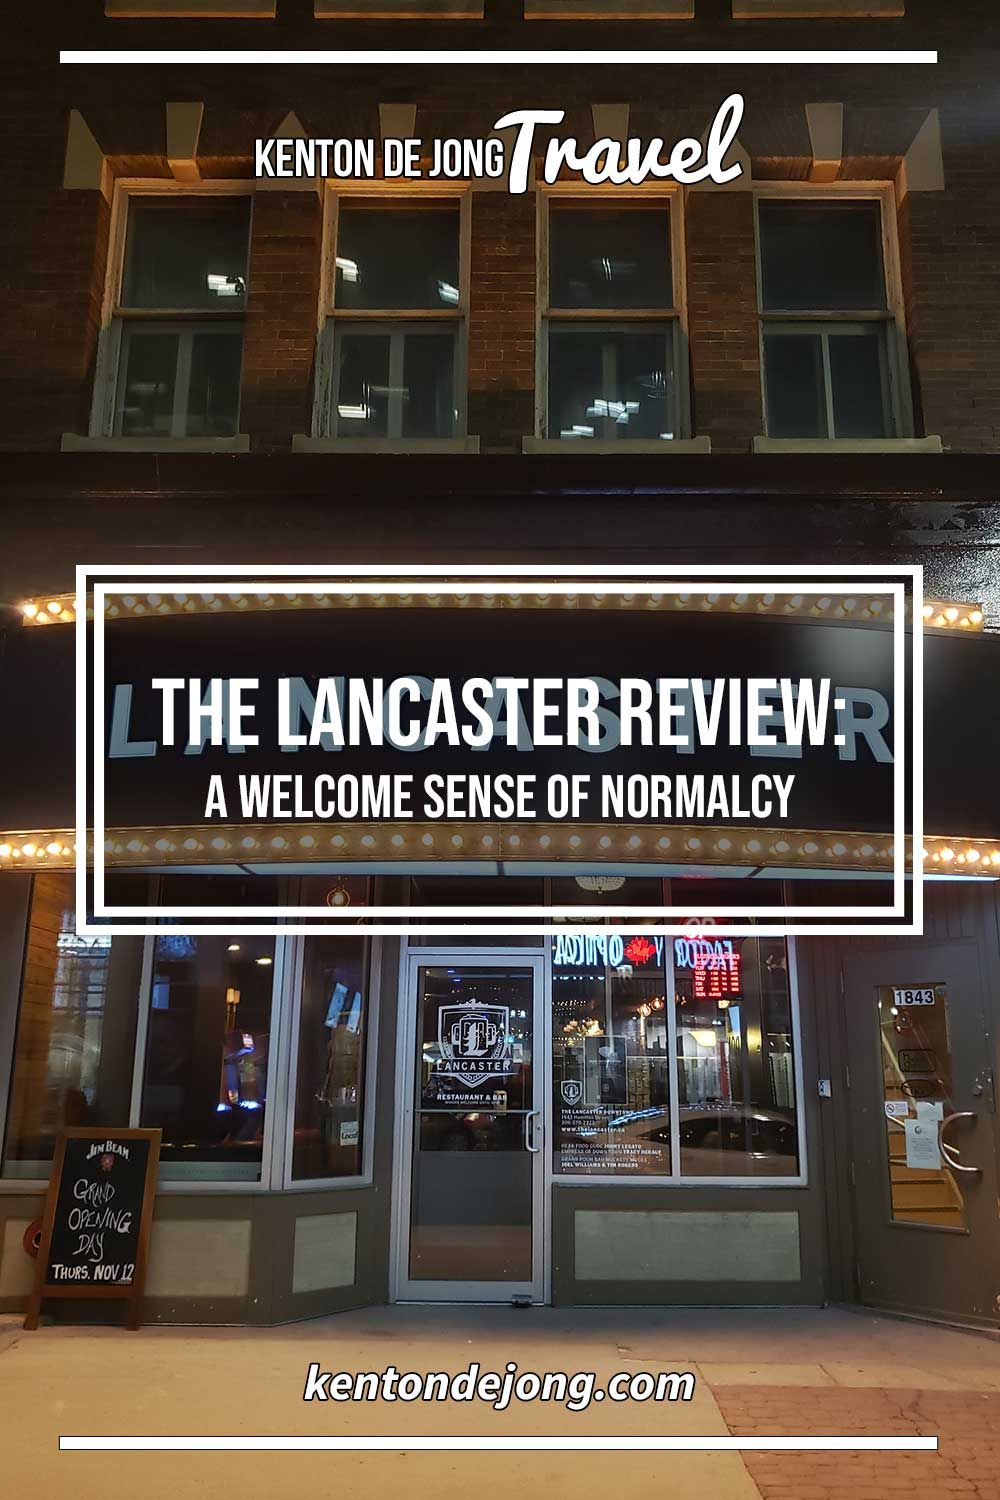 Lancaster Review: A Welcome Sense of Normalcy